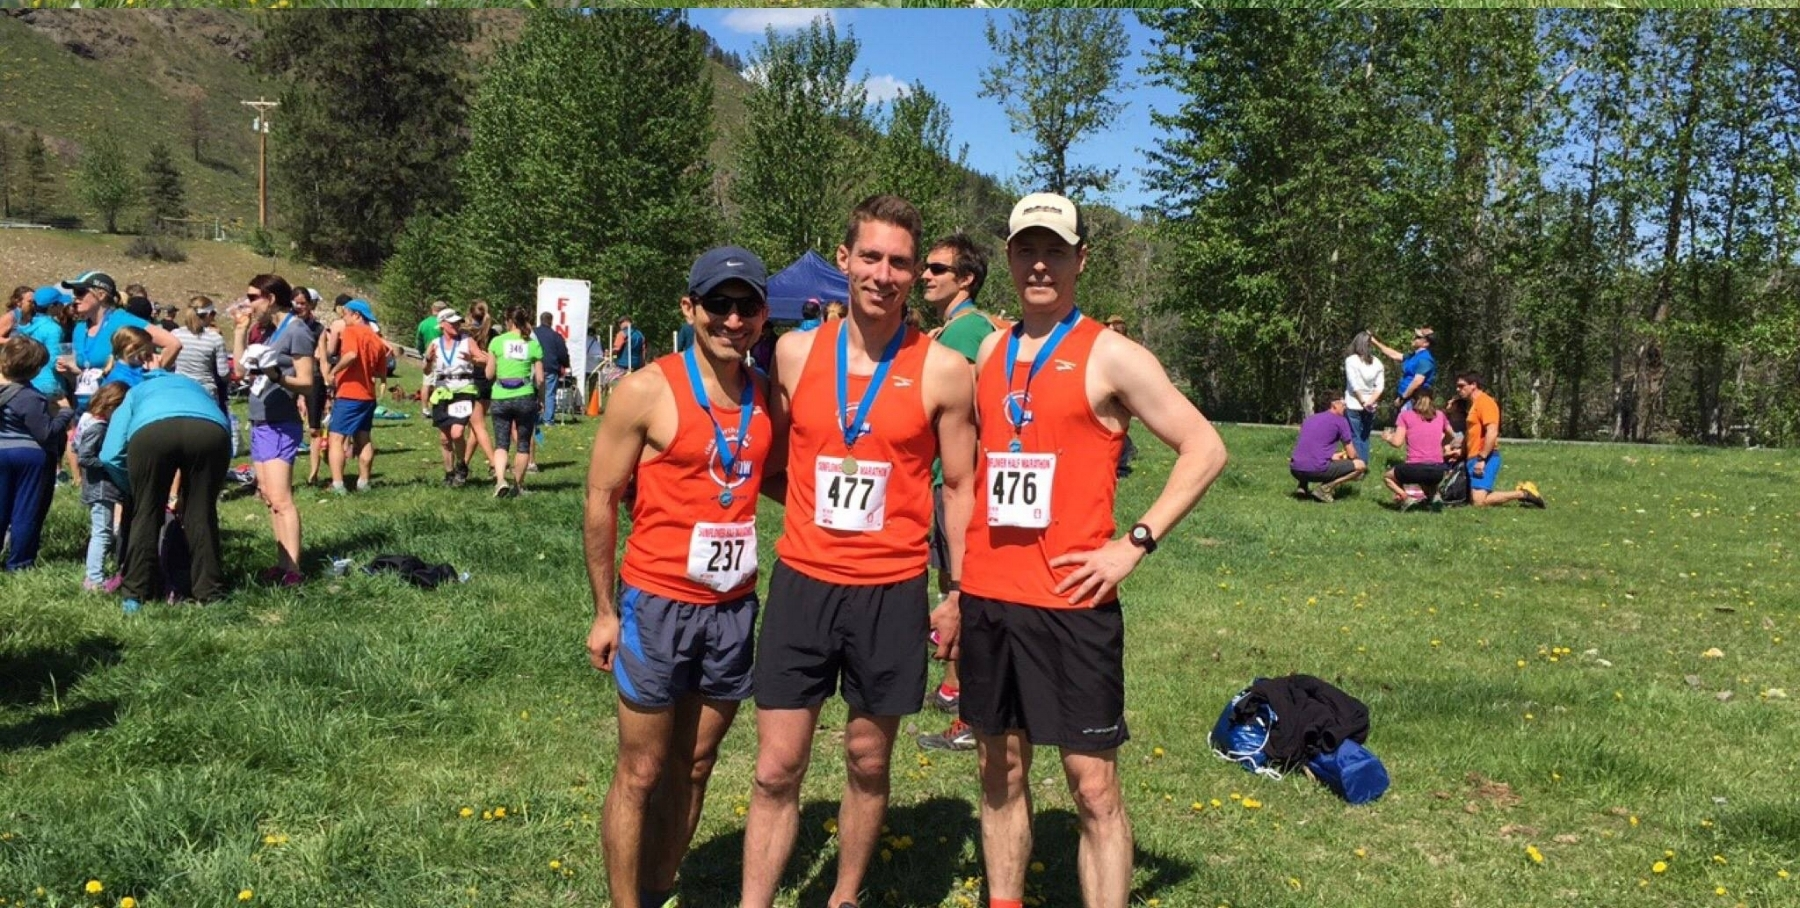 Club members Waqar Shaikh, Seth Berntsen, and David Fort went 1-2-3 at the 2017 Methow Trail Sunflower Half-Marathon, with Waqar setting a course record!